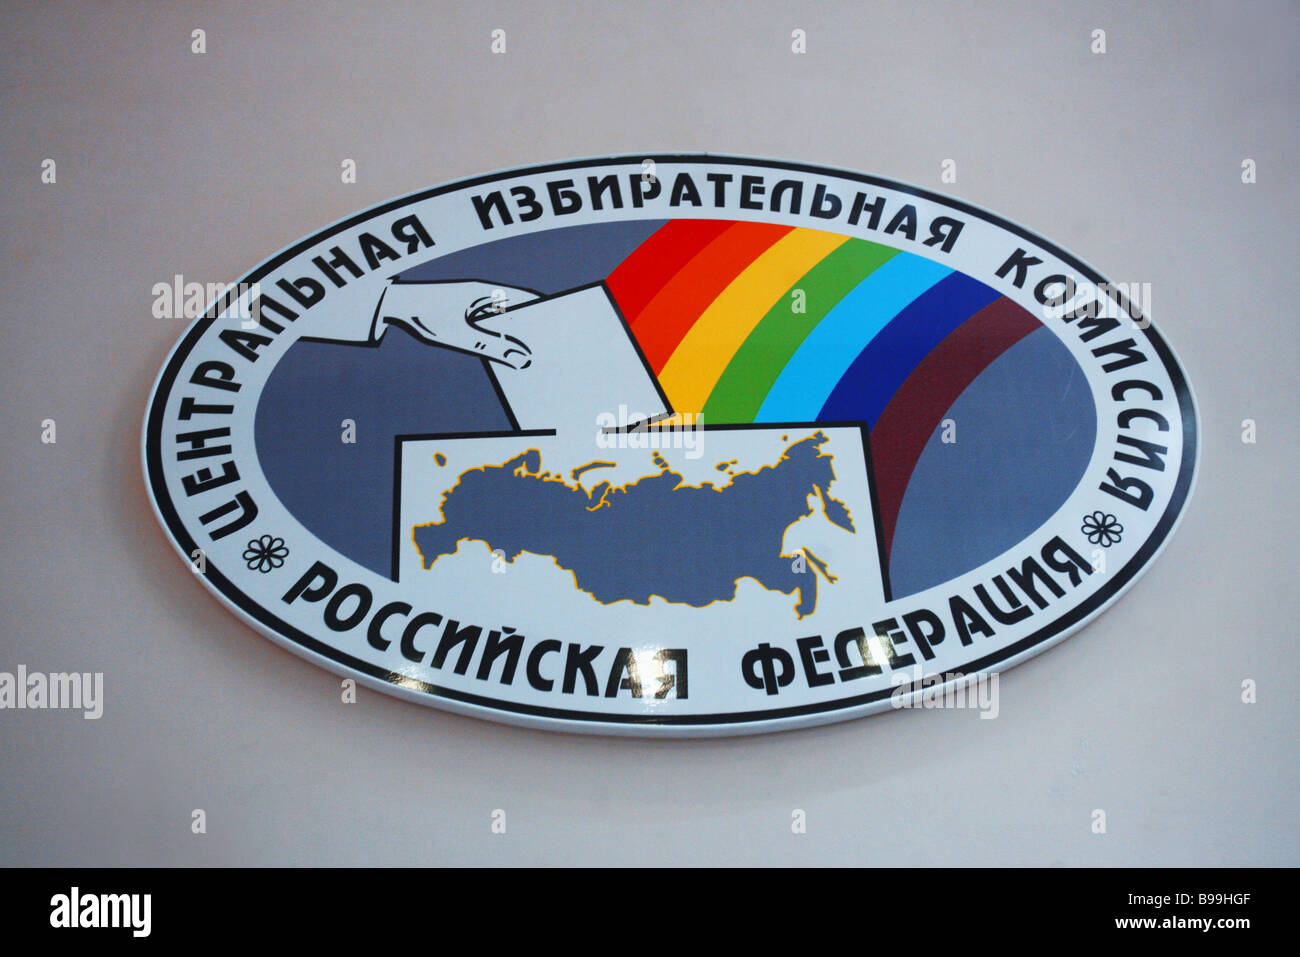 Russia s Central Election Commission logo - Stock Image